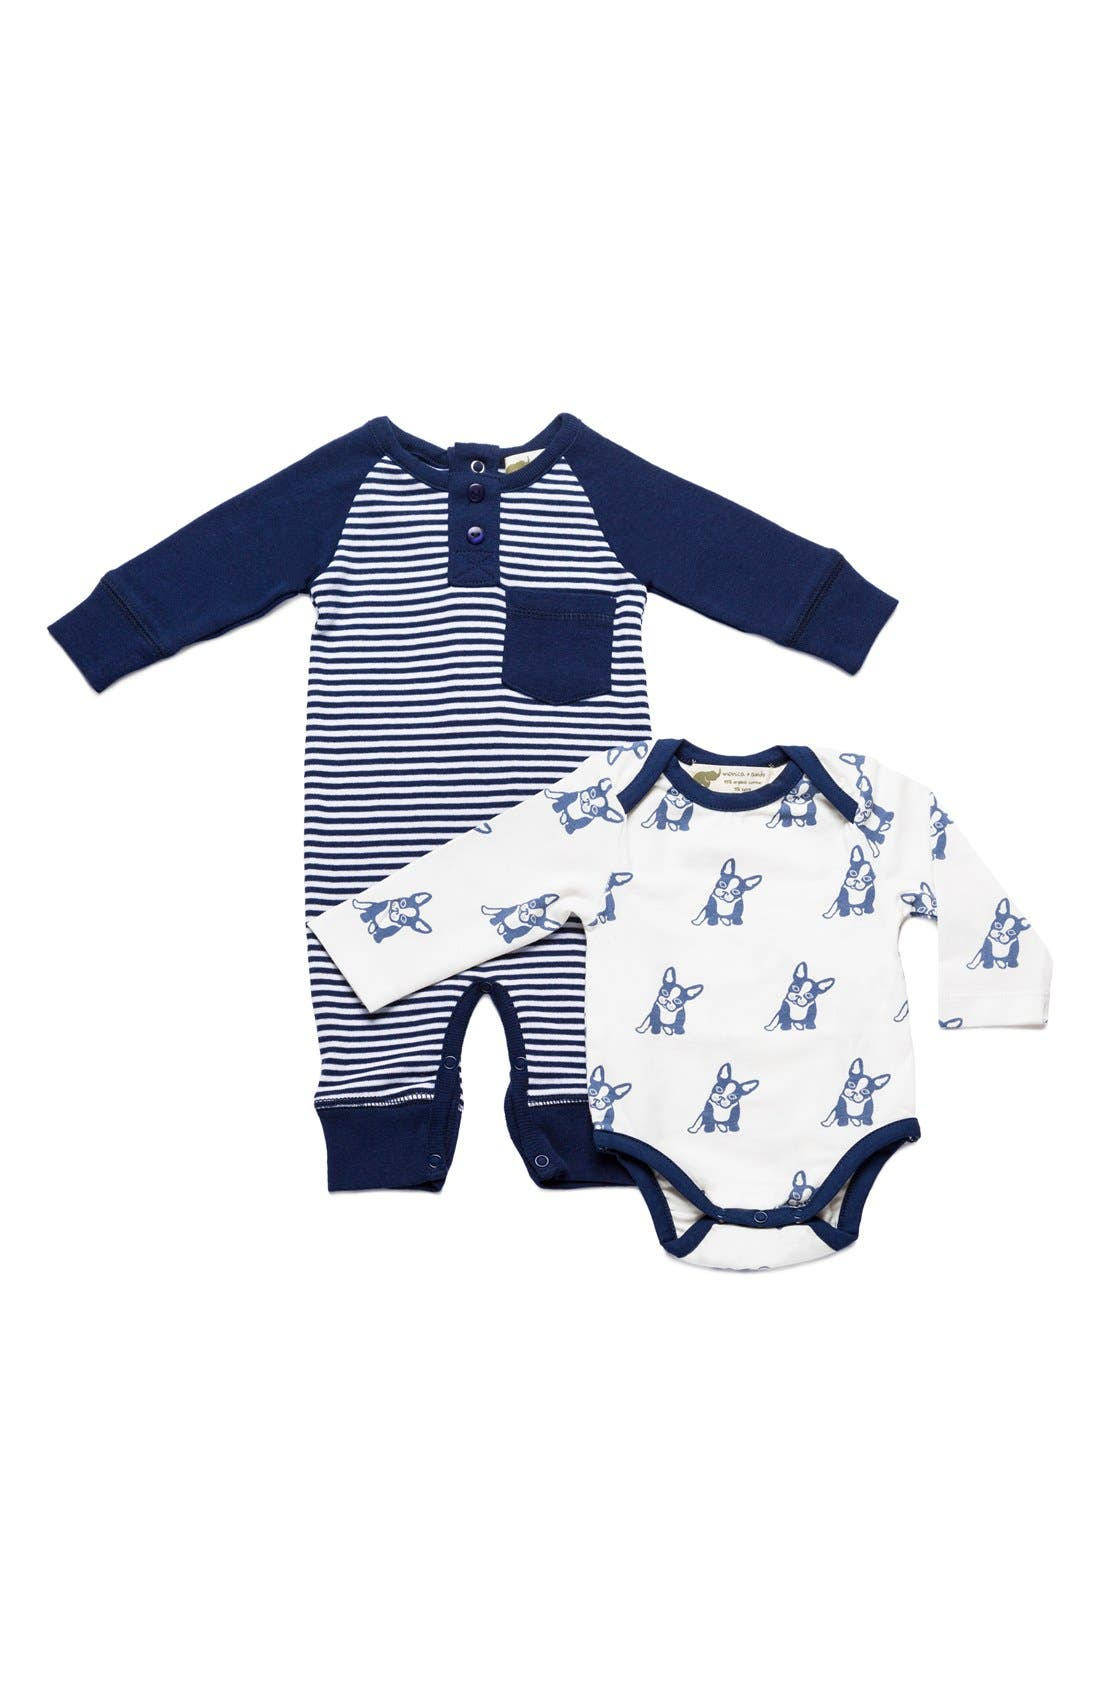 Jack & Jill Top Dog Bodysuit & Dylan Romper Set,                             Main thumbnail 1, color,                             400